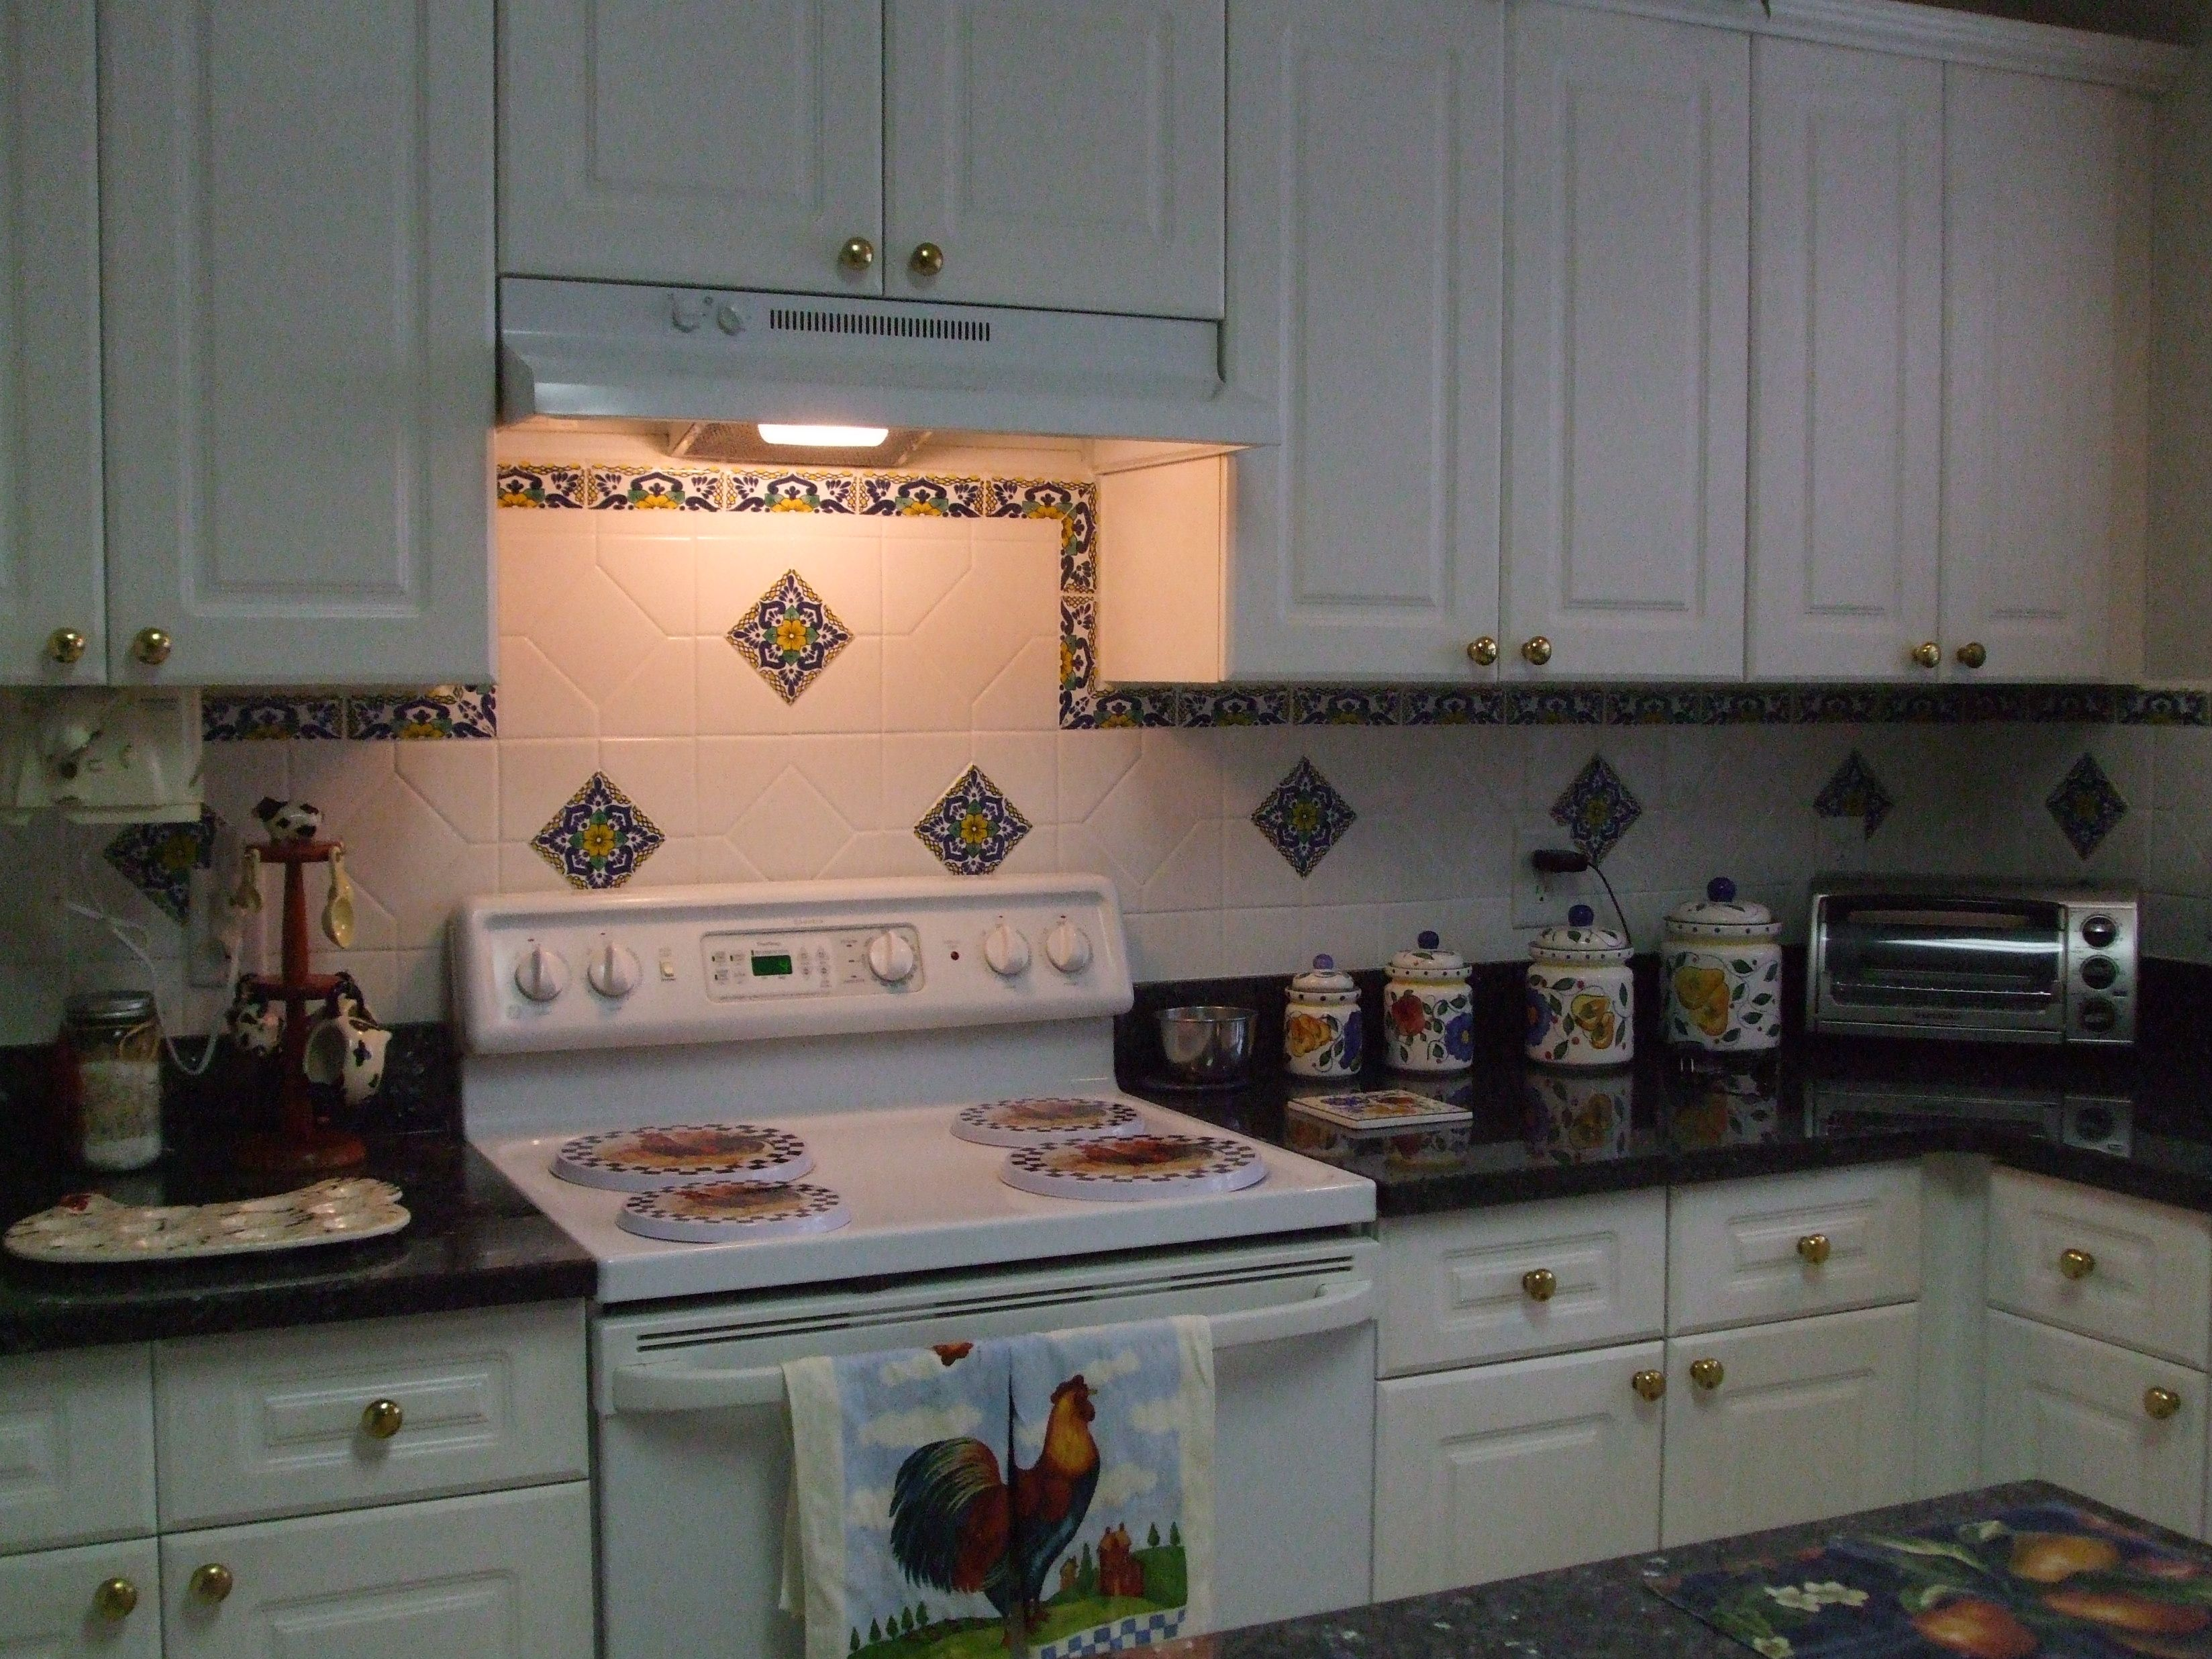 Decorate your kitchen of colorful and gorgeous way using talavera decorate your kitchen of colorful and gorgeous way using talavera tiles on the backsplash or dailygadgetfo Gallery